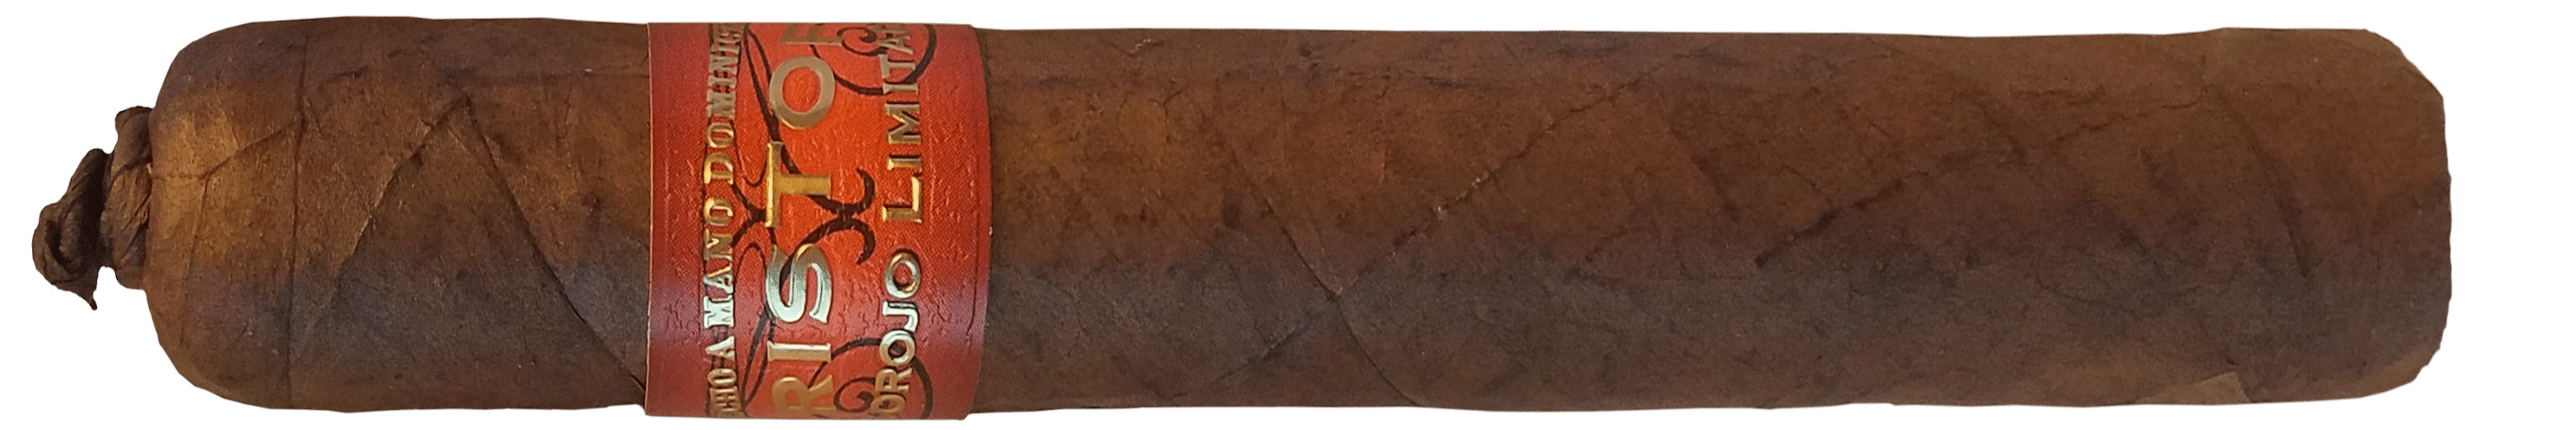 The Corojo Limitada is for the fan of Nicaraguan tobacco. Nearly a puros Nicaraguan blend, this medium-full bodied cigar is loaded with spice, nutmeg, toasted nut and a sweet-spicy finish. Made with 100% Habano seed tobacco that is double and triple fermented, the Corojo Limitada maintains the Kristoff tradition of flavor and smoothness. The signature of Kristoff Cigars.  Blend Wrapper: Nicaraguan Corojo Habano Binder: Nicaraguan Habano Filler: Nicaraguan Habano, Dominican Habano  Sizes Matador – 6.5 x 56 Churchill – 7 x 50 Robusto – 5.5 x 54 Lancero – 7.5 x 40 Torpedo – 6.25 x 52